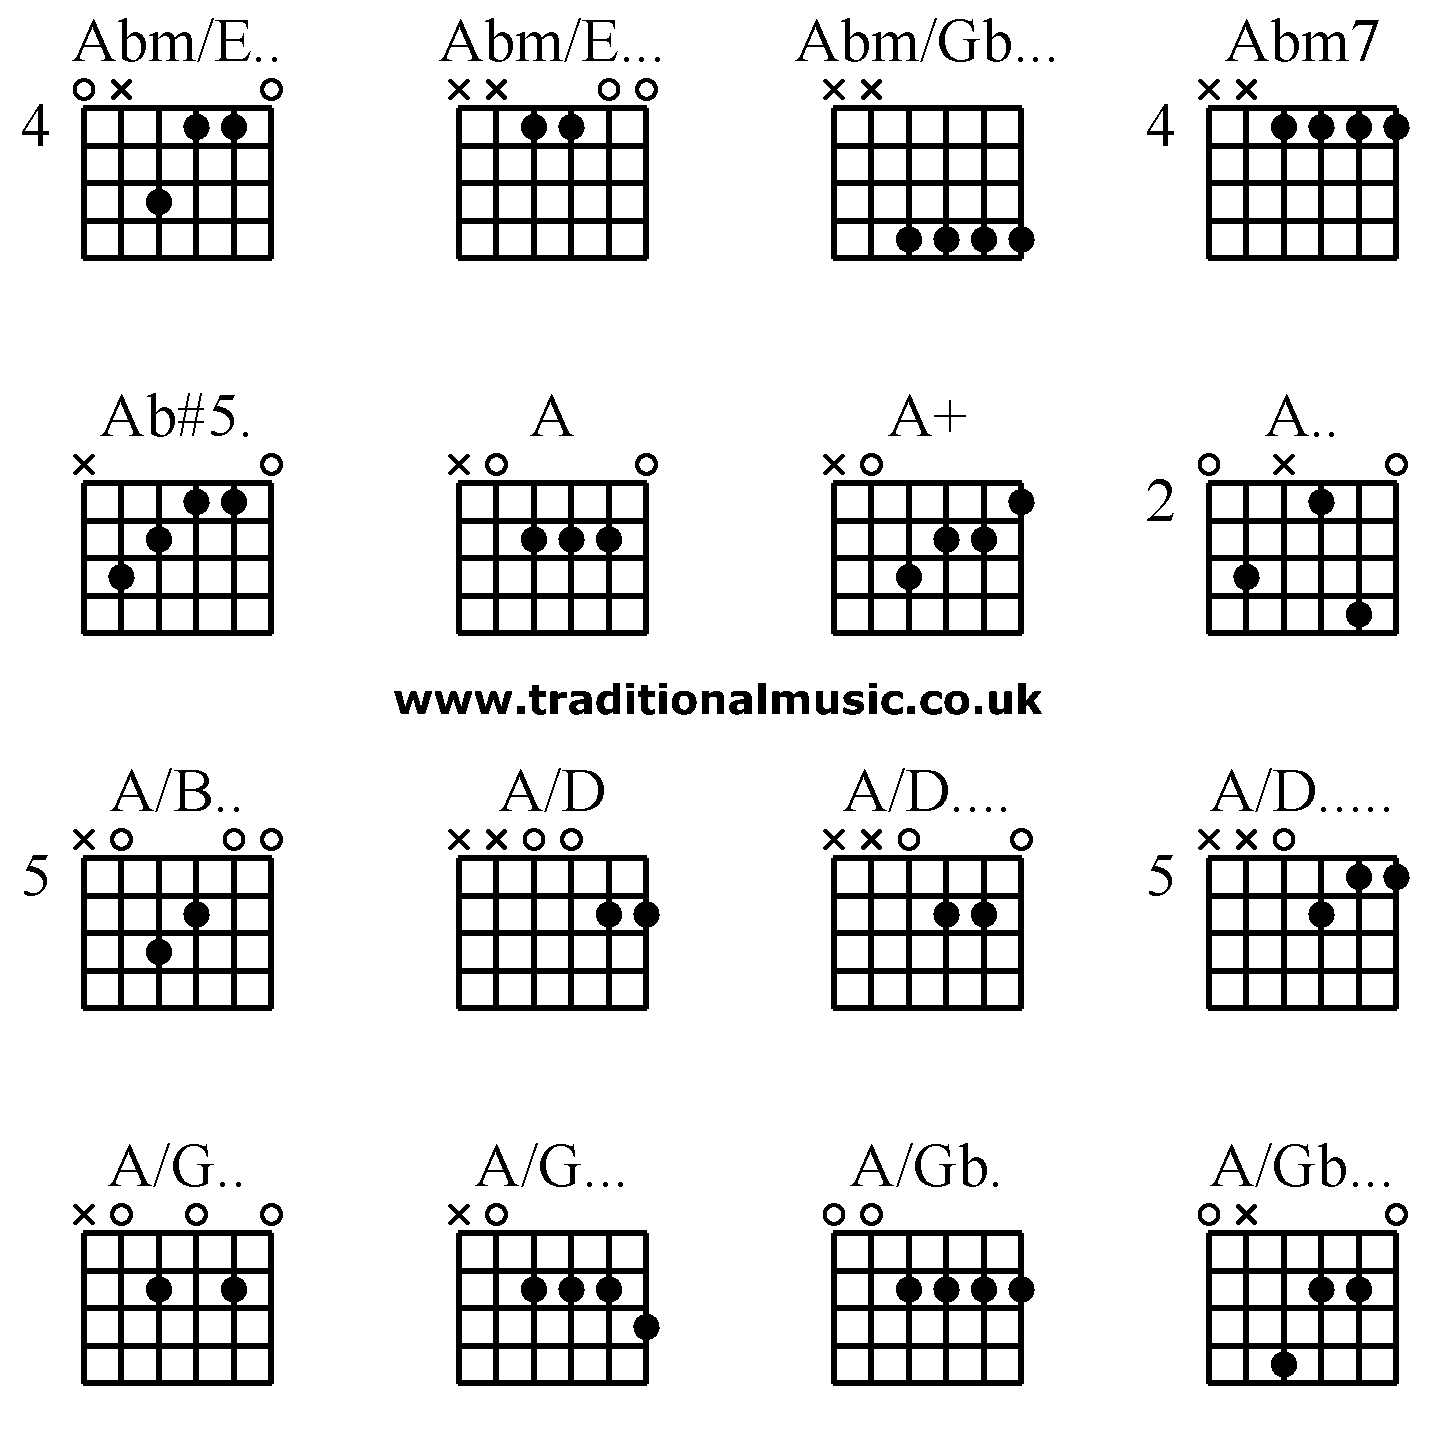 Advanced Guitar Chords Abme Abme Abmgb Abm7 Ab5 A A